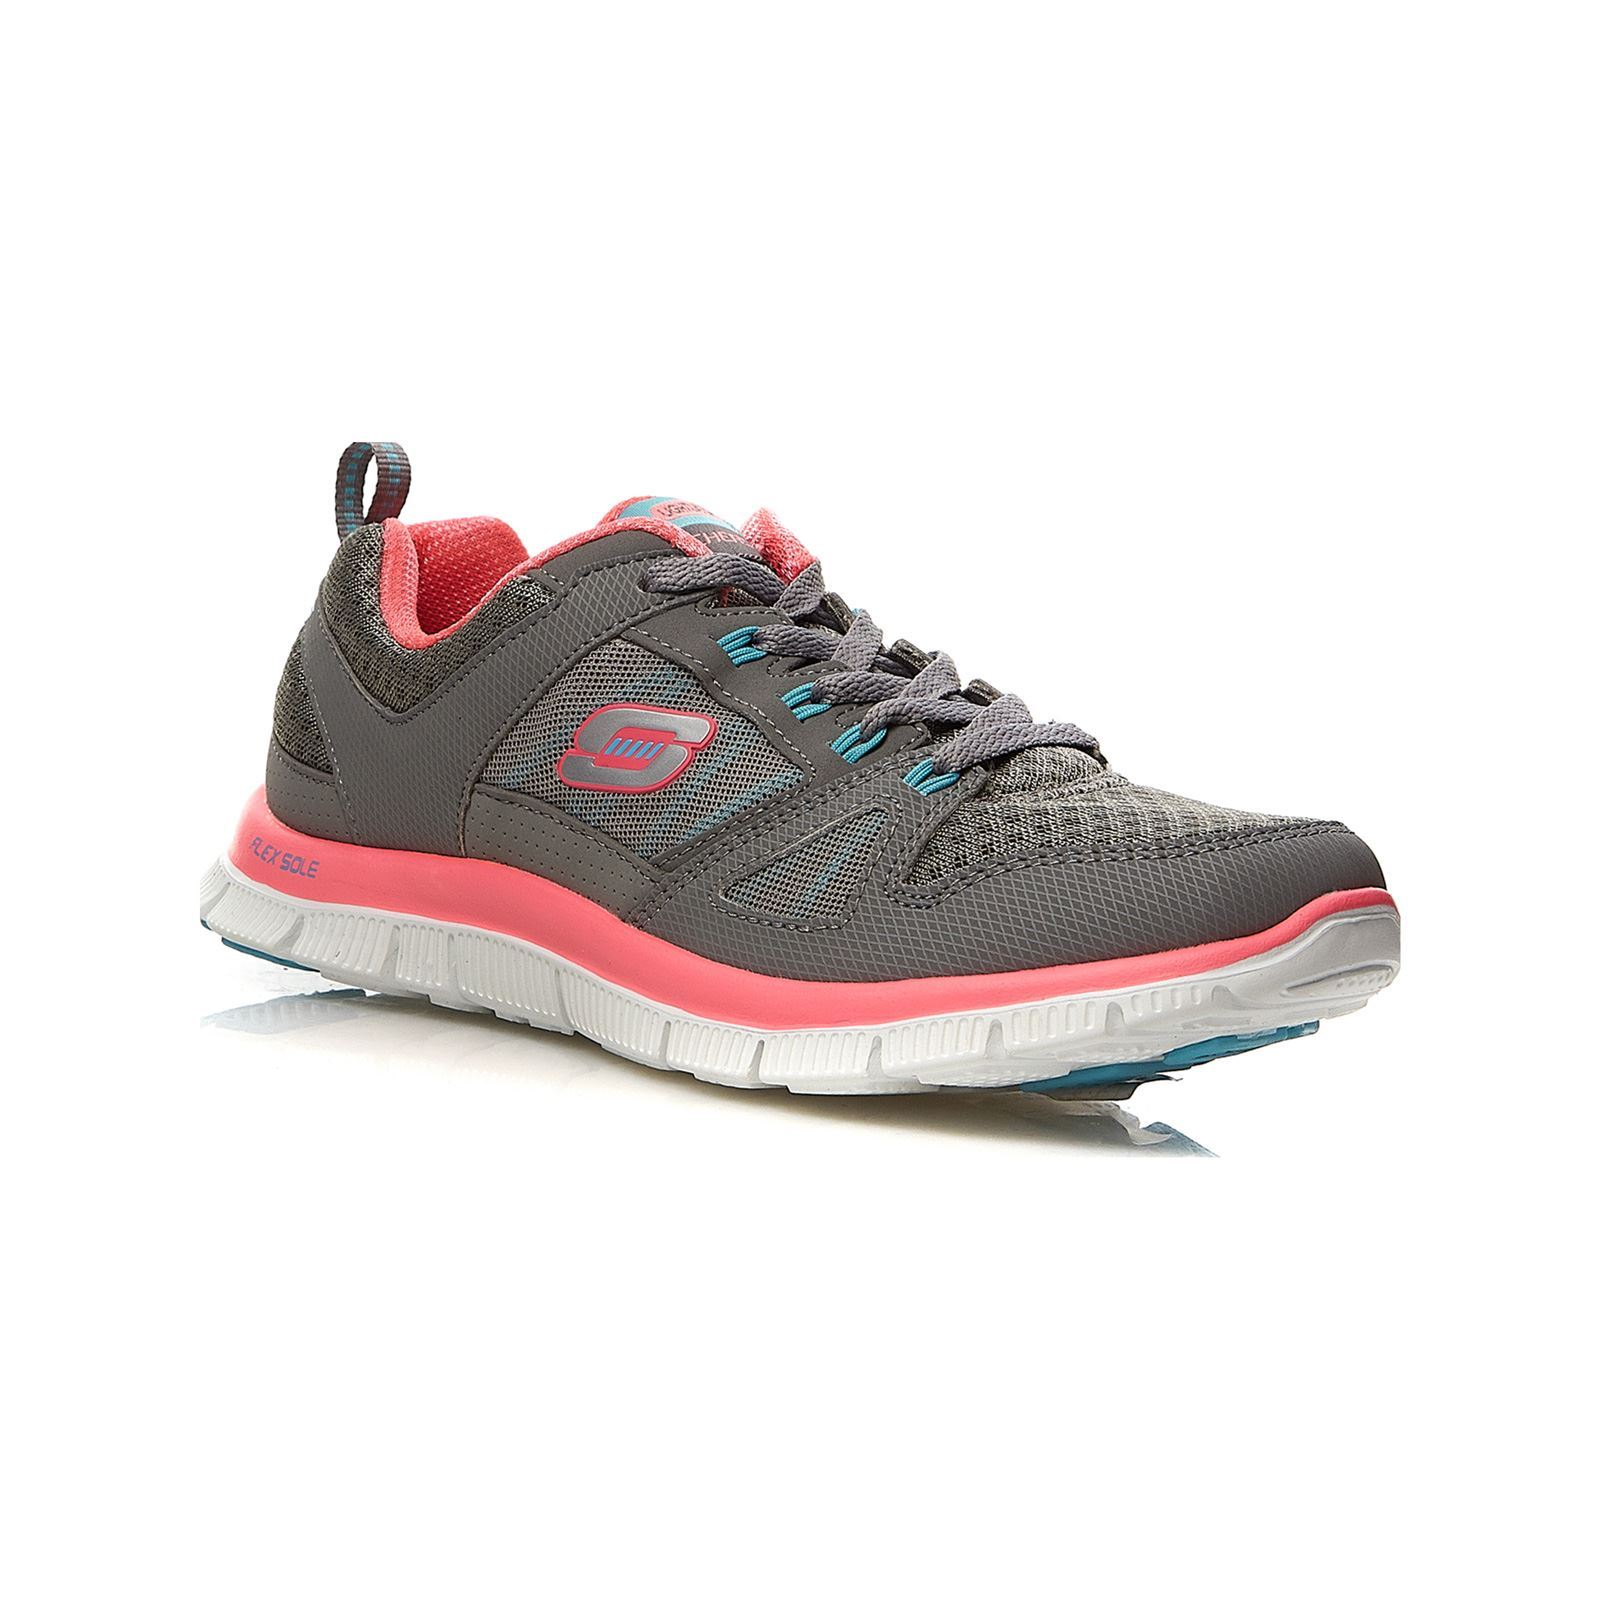 Calzature Da In Bi Sport Materiale Skechers GrigioBrandalley Pelle tsCrxhQBd